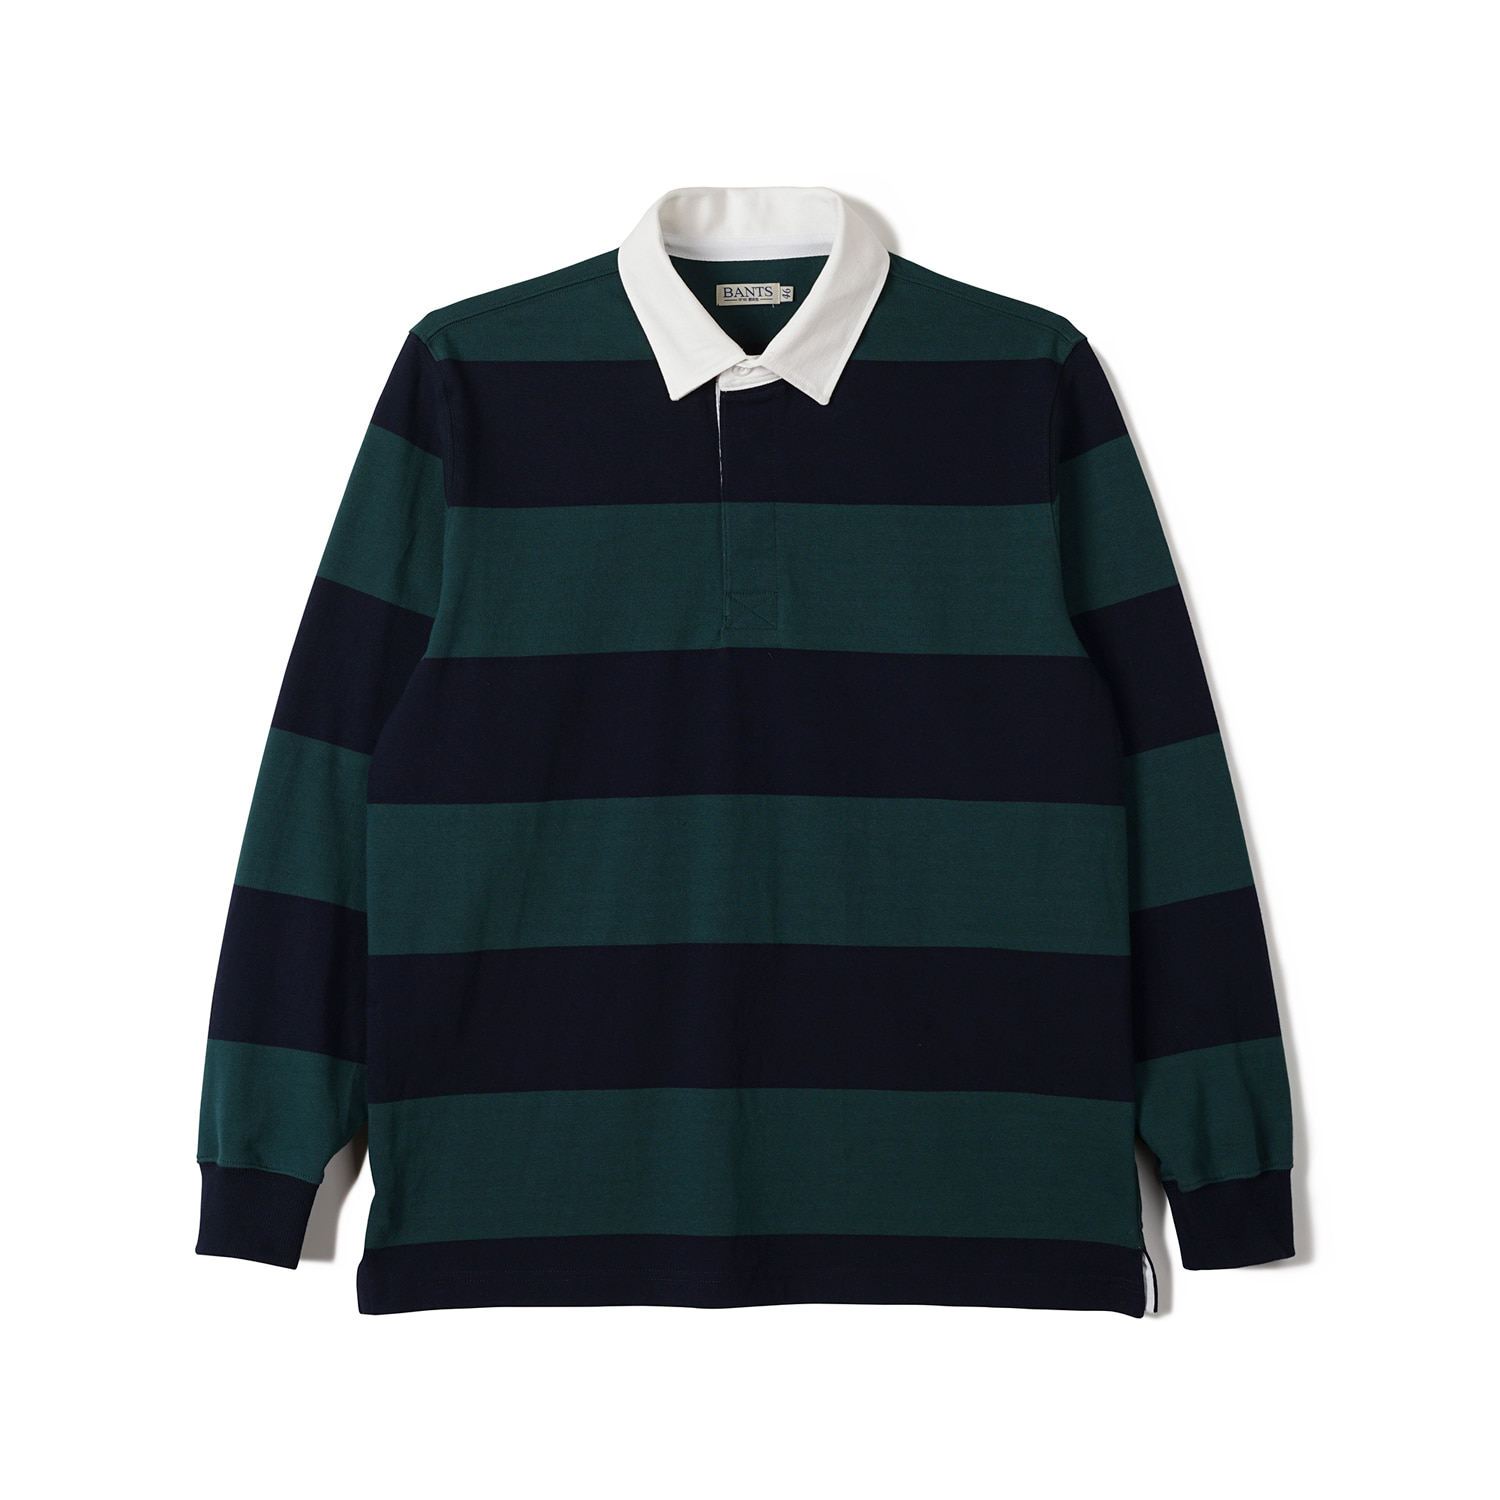 FLB Stripe Cotton Rugby T-shirt Green x NavyBANTS(반츠)